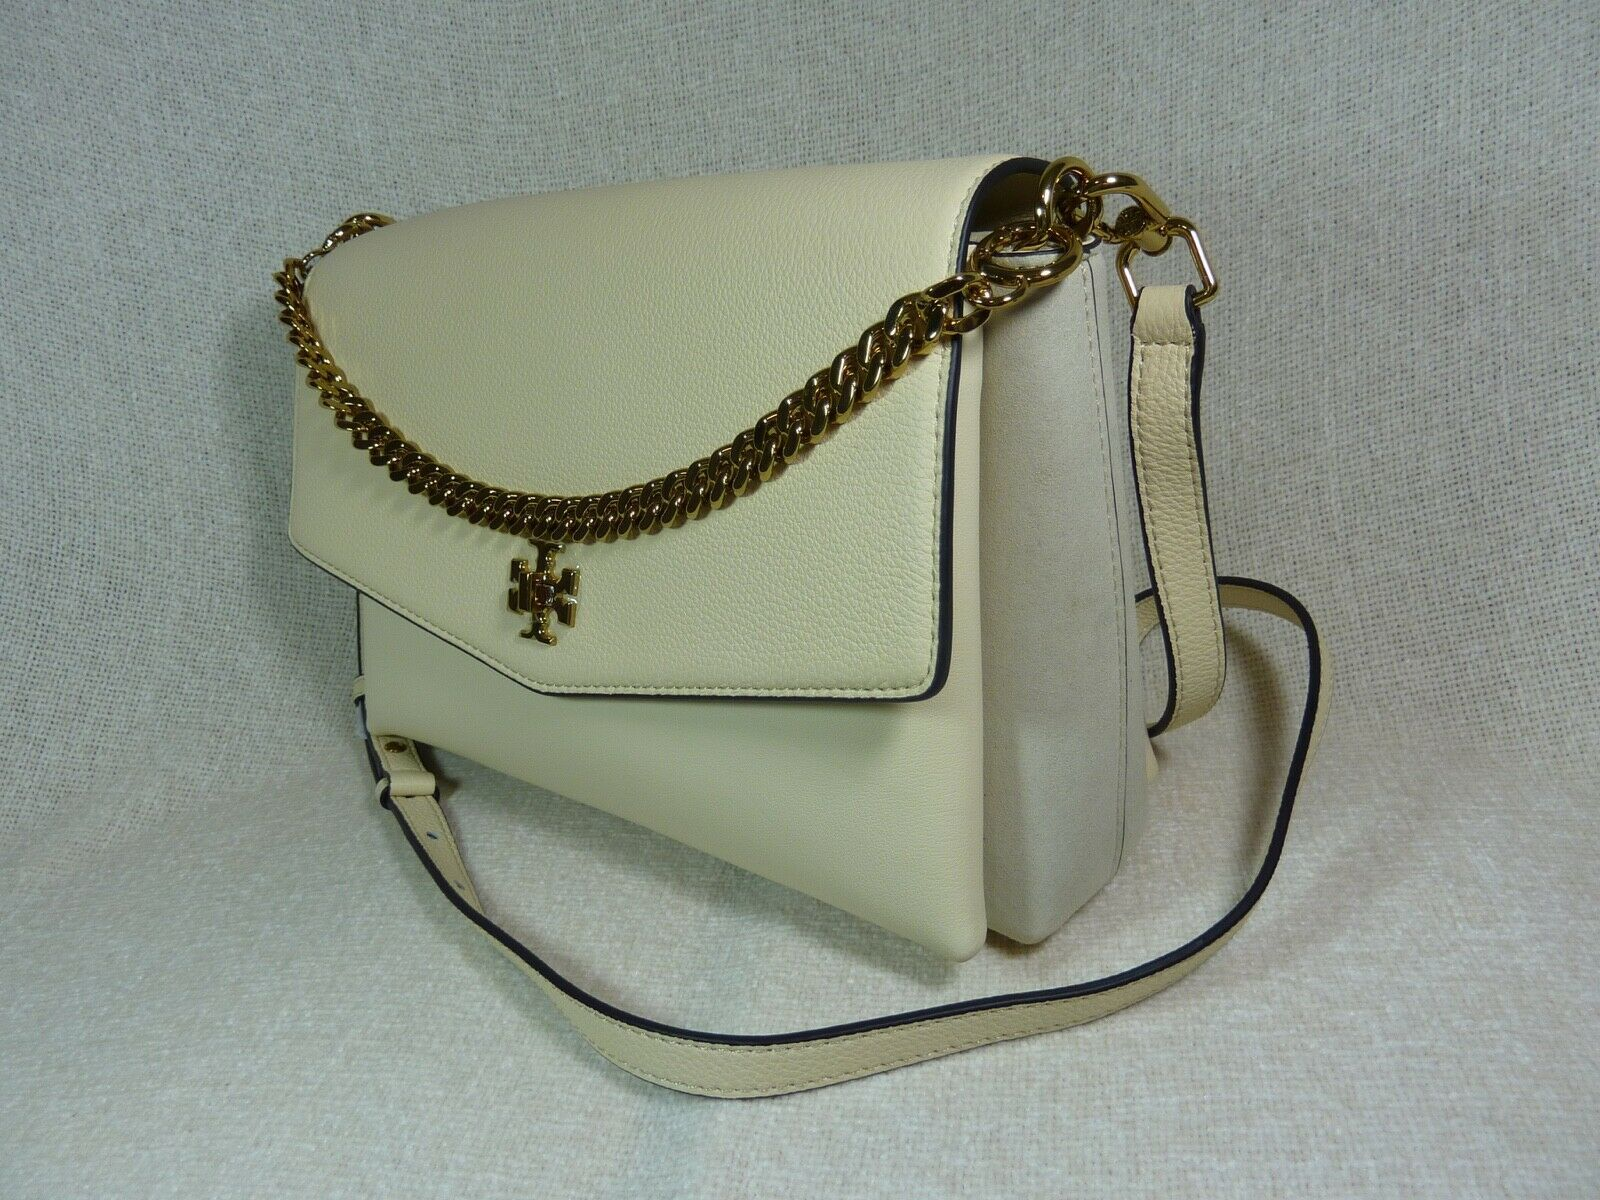 NWT Tory Burch New Cream KIRA Mixed-material Double-strap Shoulder Bag $528 image 2